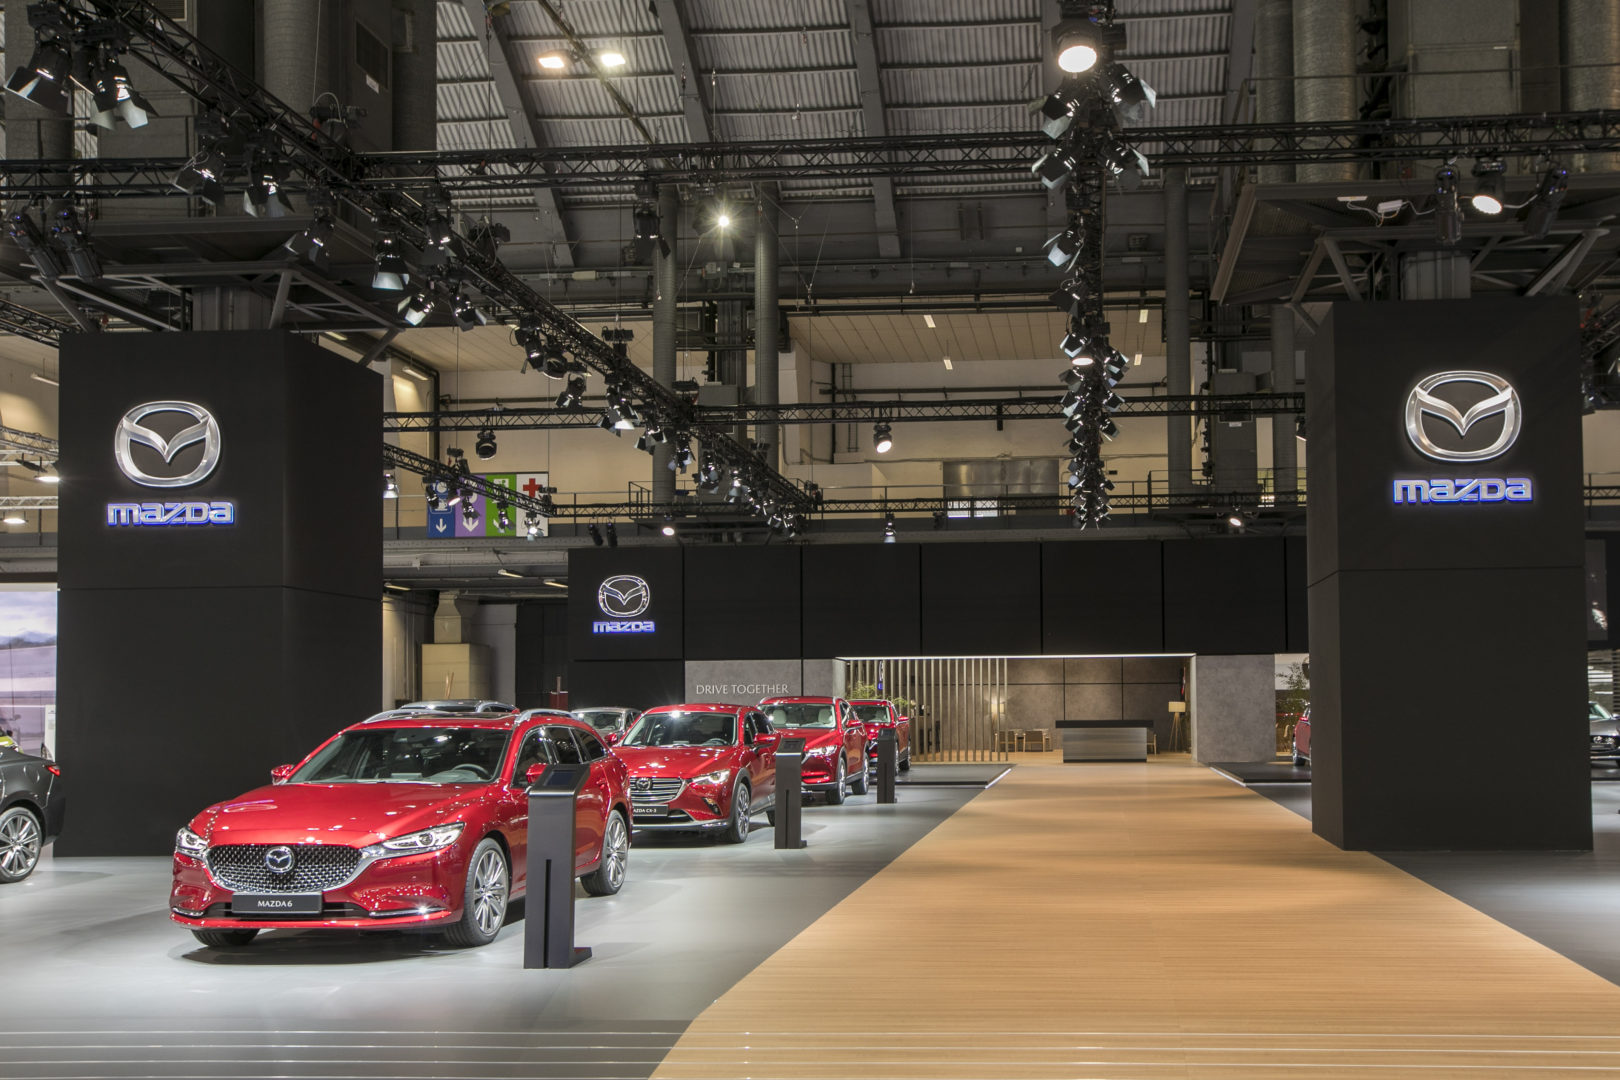 Design et construction du stand MAZDA à AUTOMOBILE 2019.